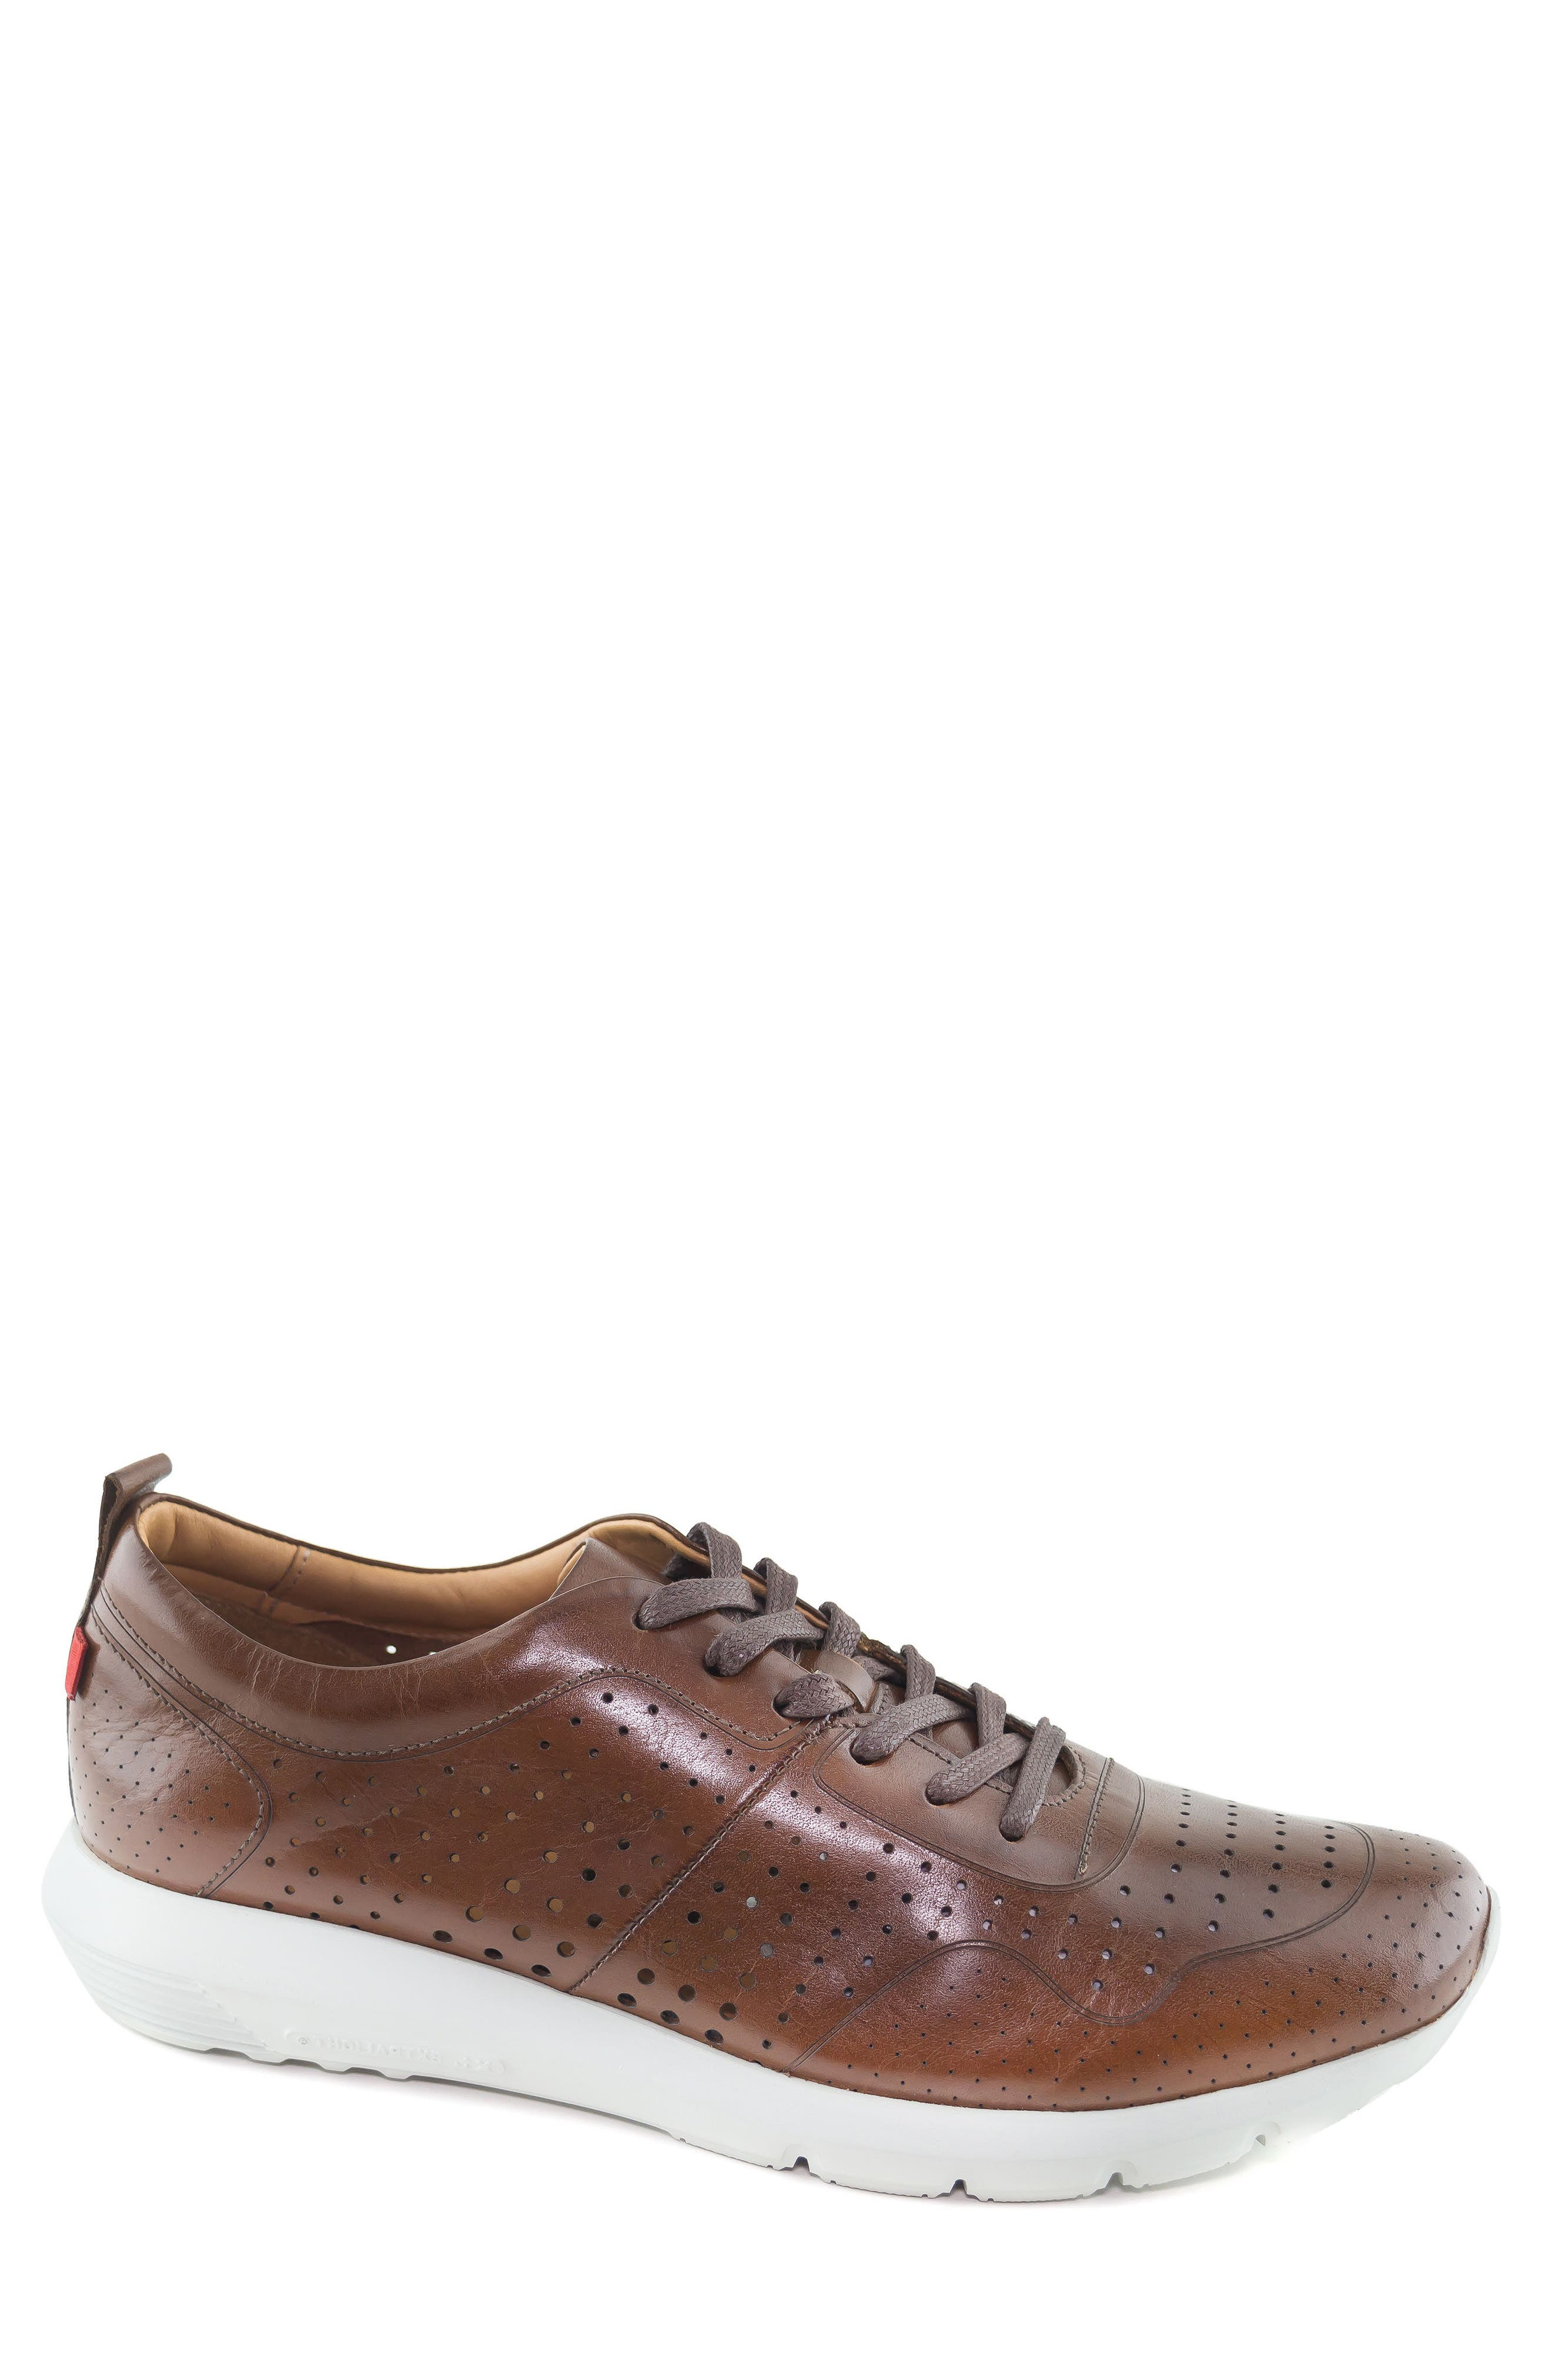 Marc Joseph New York Grand Central Perforated Sneaker, Brown